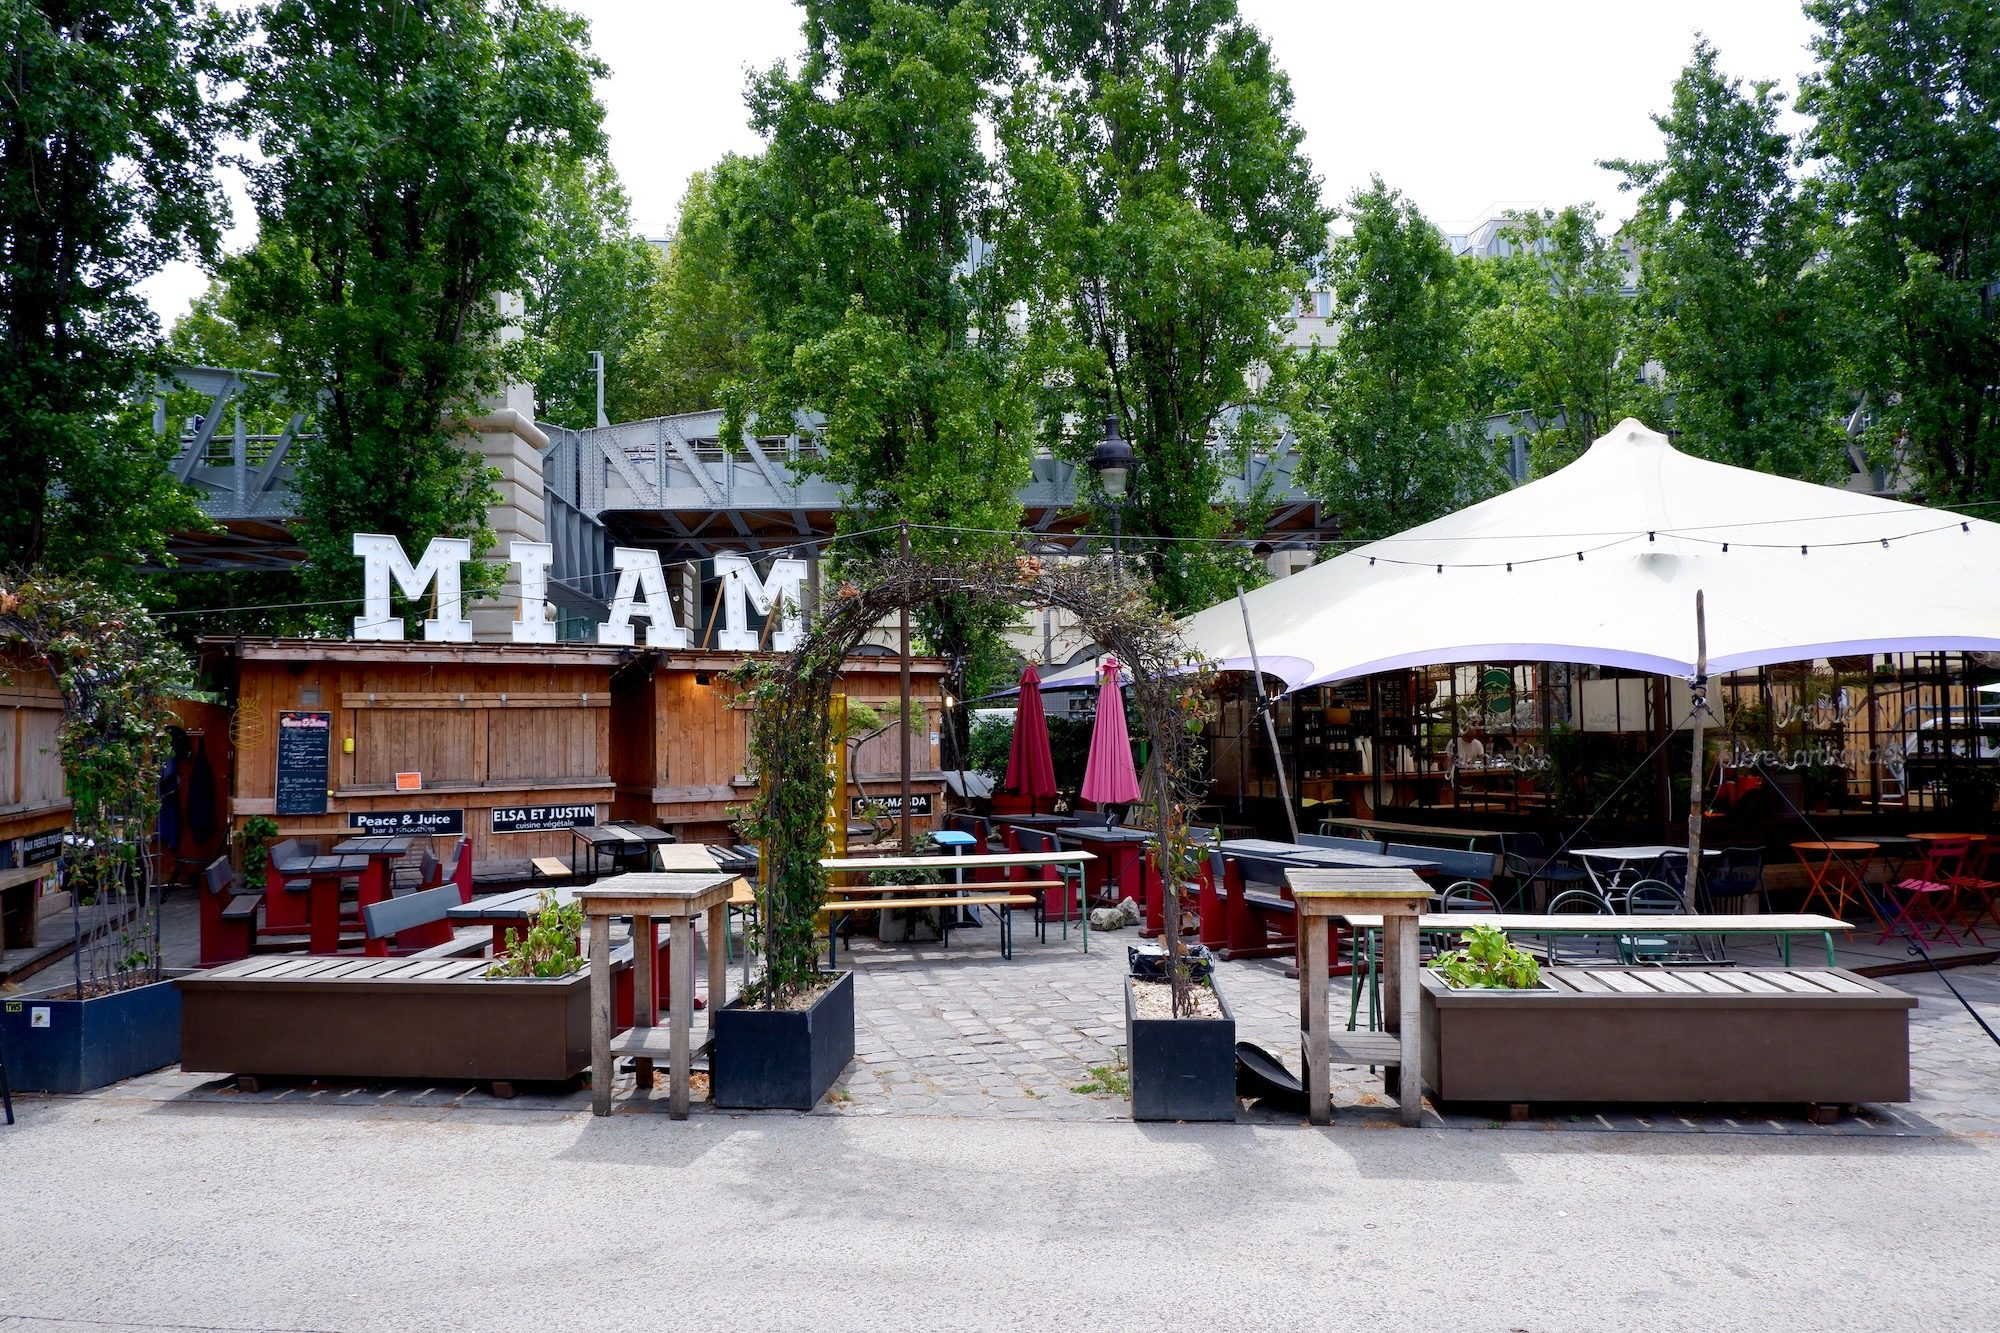 The terrace of La Rotonde Paris bar close to the canal is an urban garden with seating and parasols.